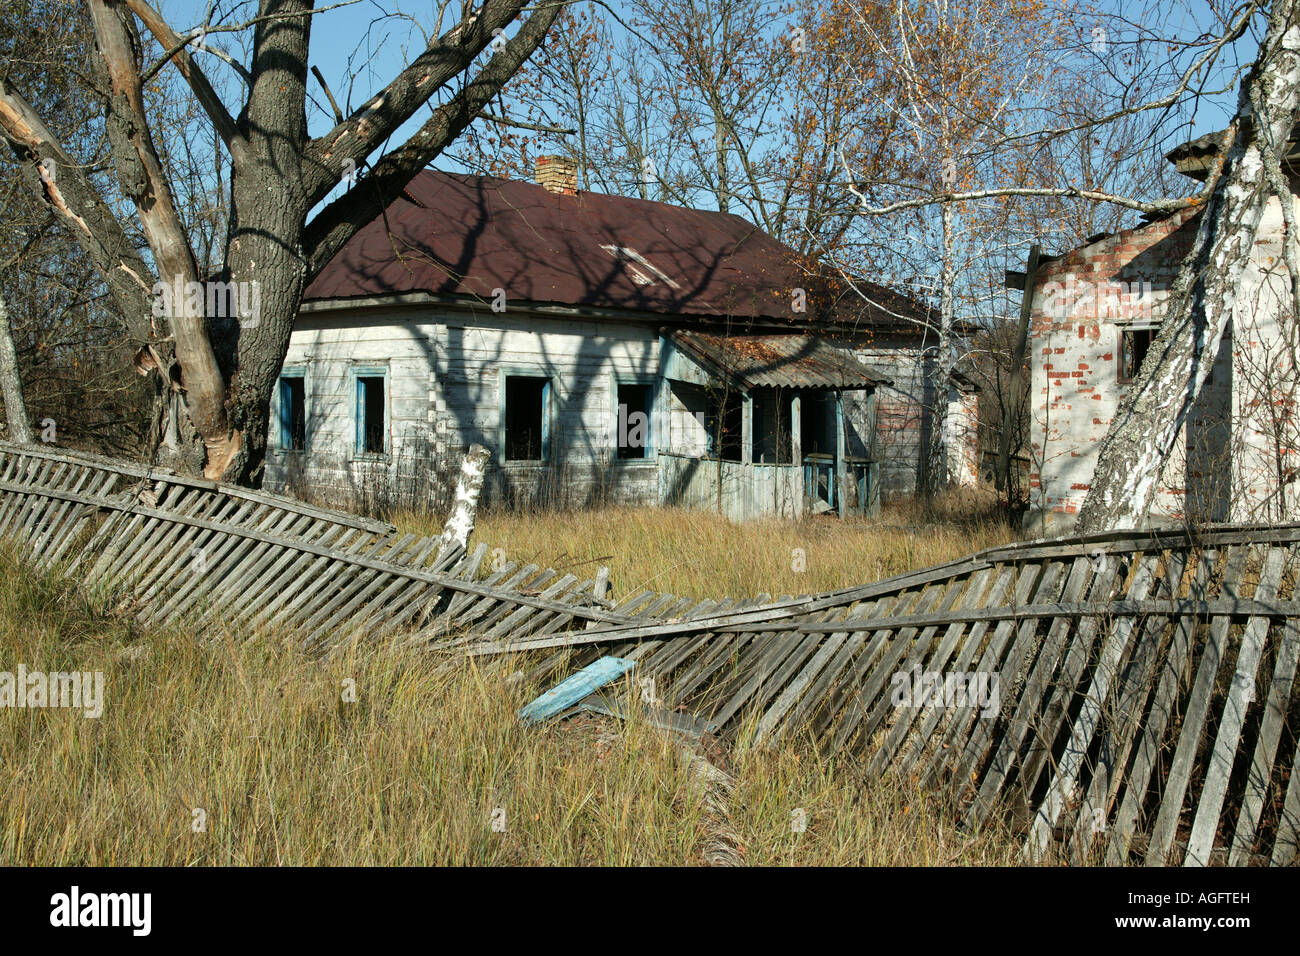 abondoned house in Chernobyl exclusion zone - Stock Image